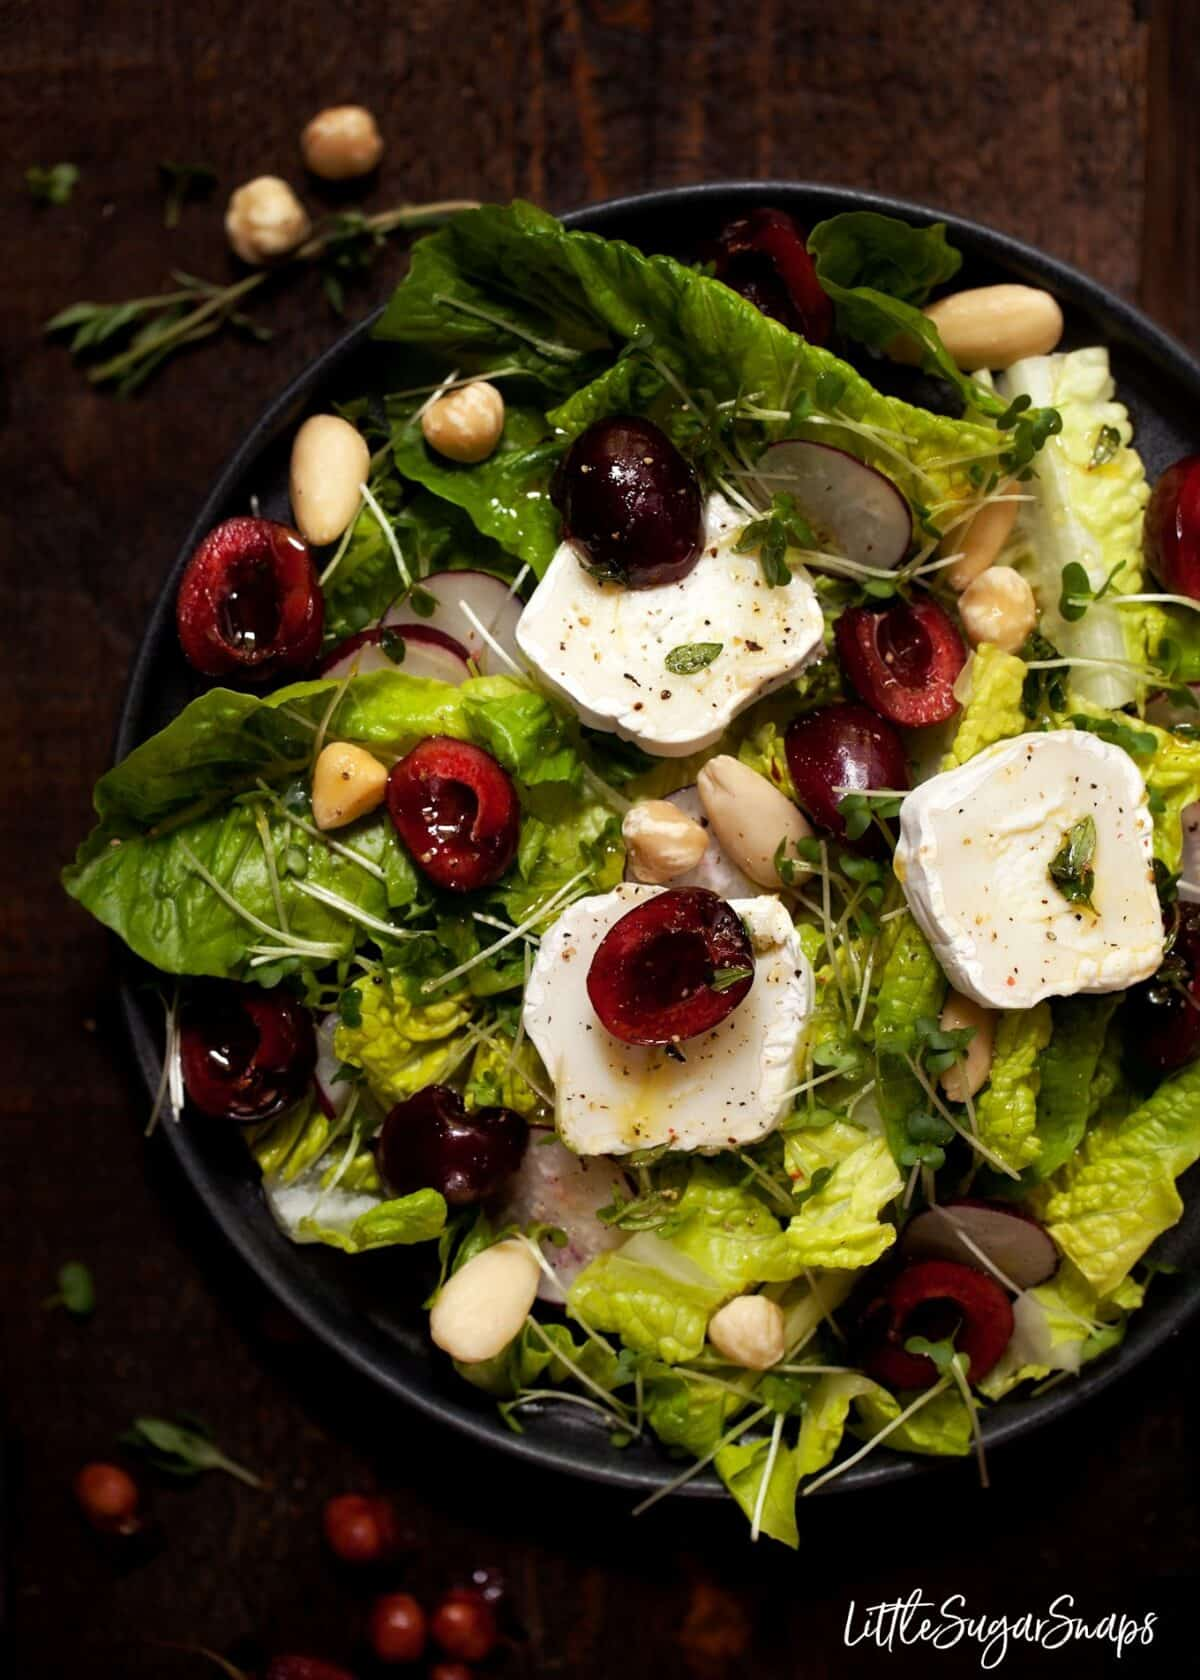 Close up view of Cherry & Goats Cheese Salad with hazelnuts, almonds & honey dressing